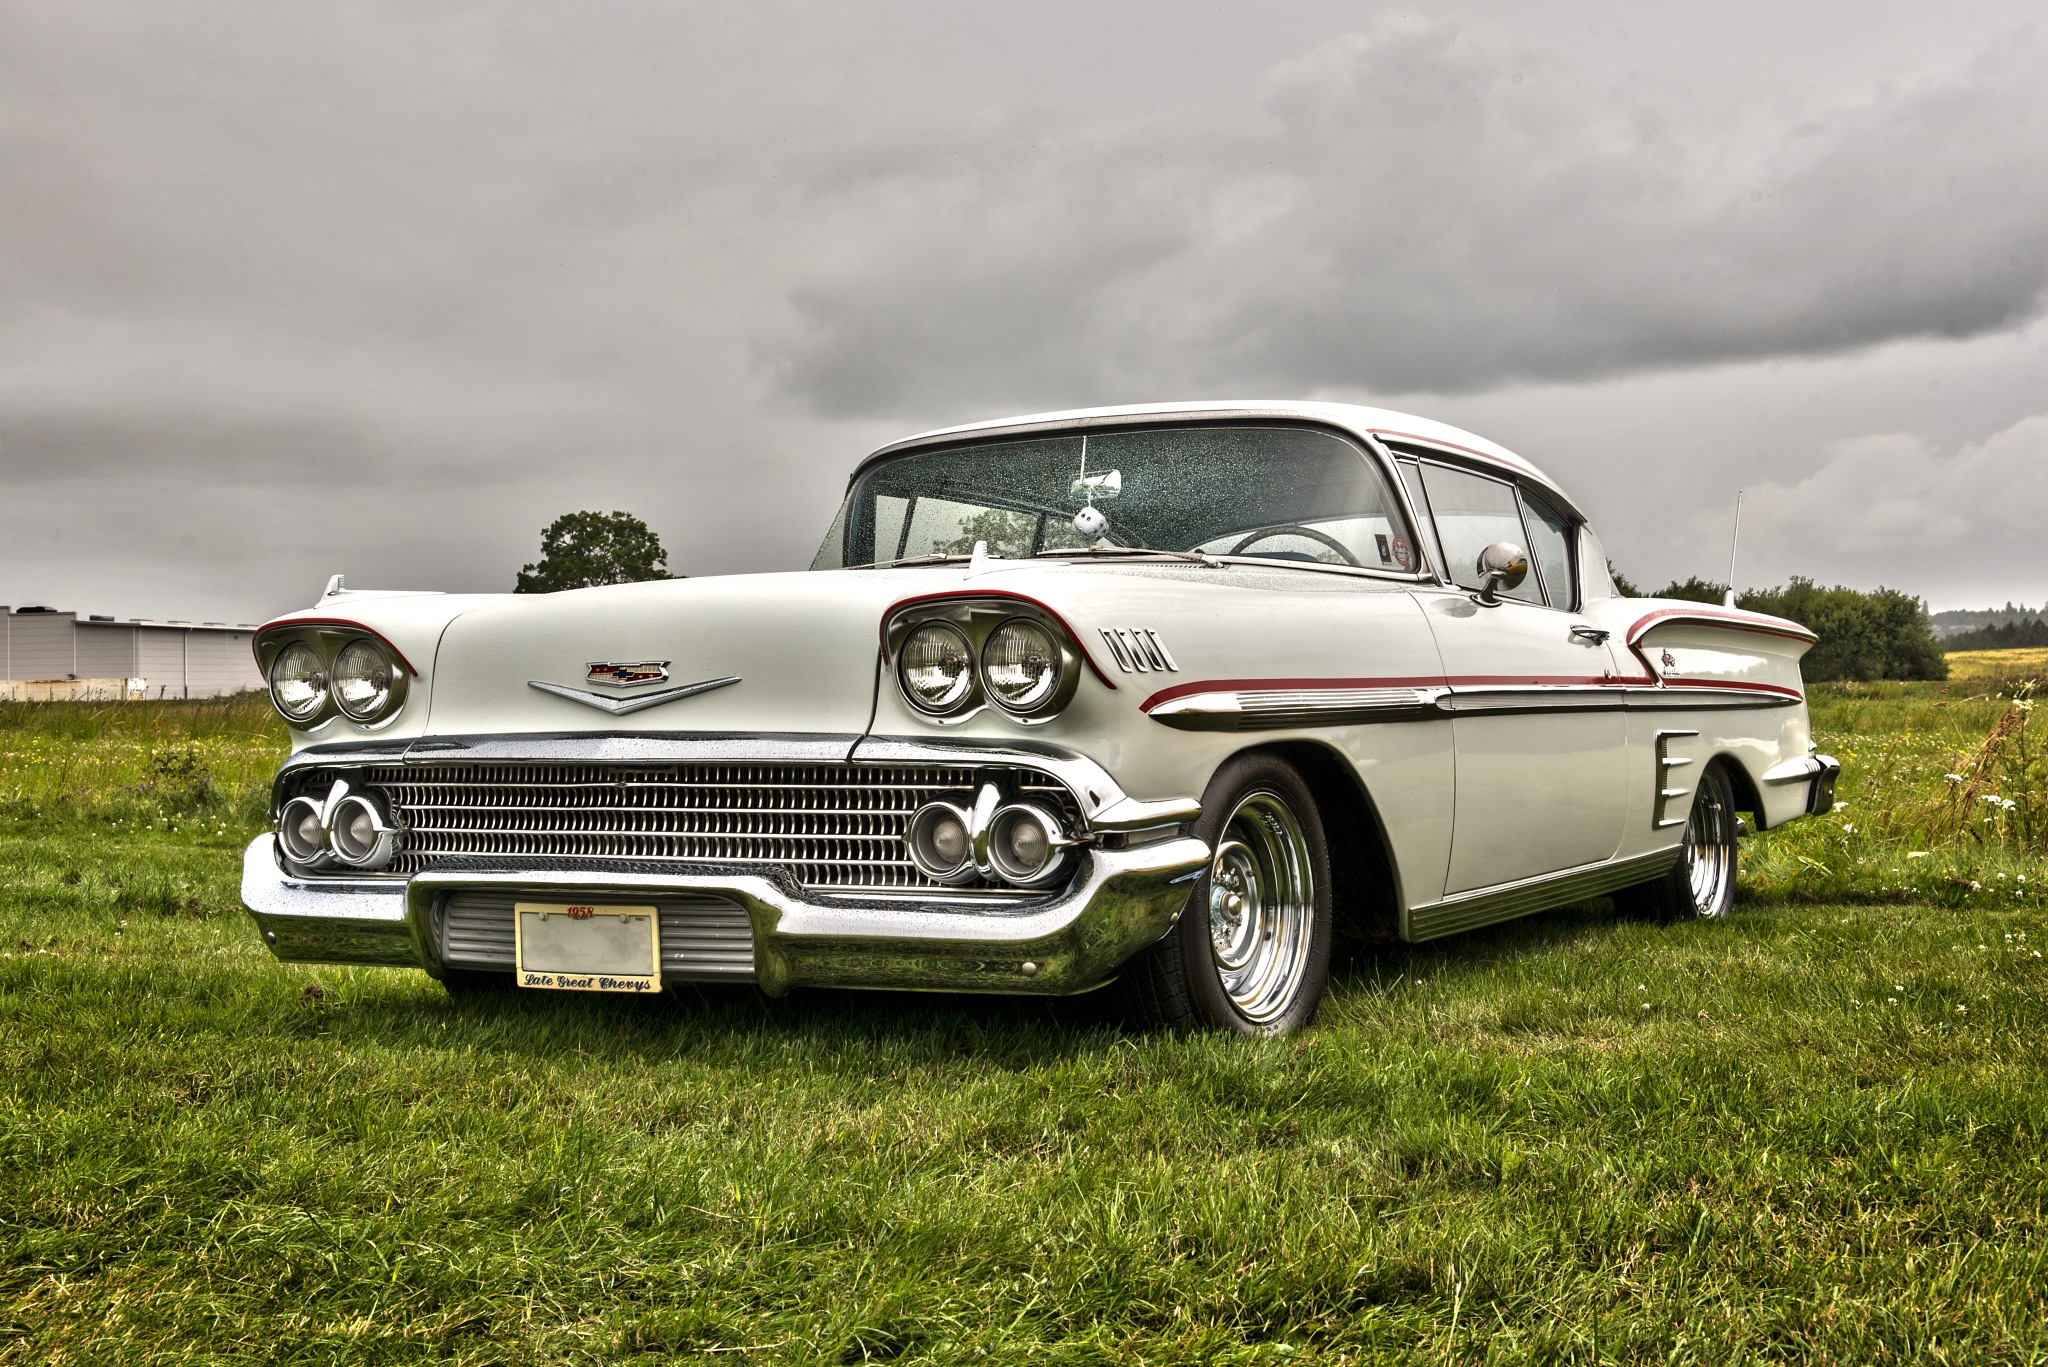 1958 Chevrolet Impala by Linda Persson